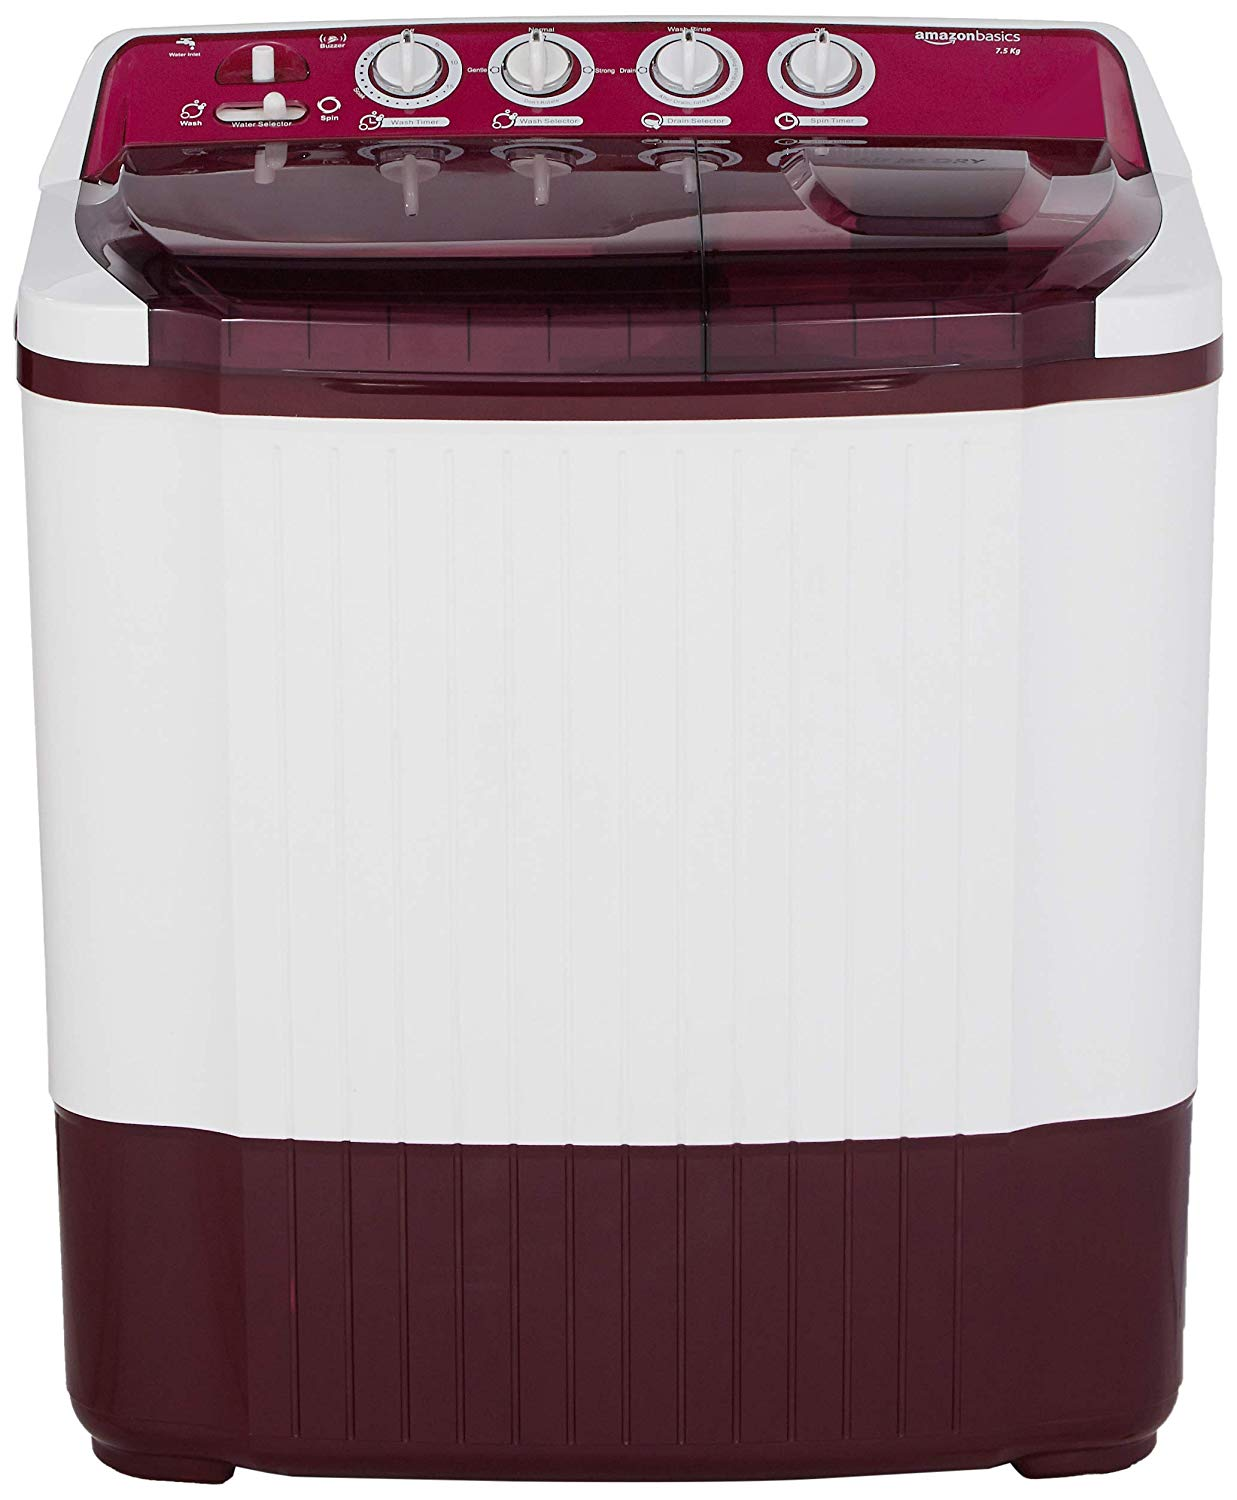 AmazonBasics Burgundy Washing Machine Review